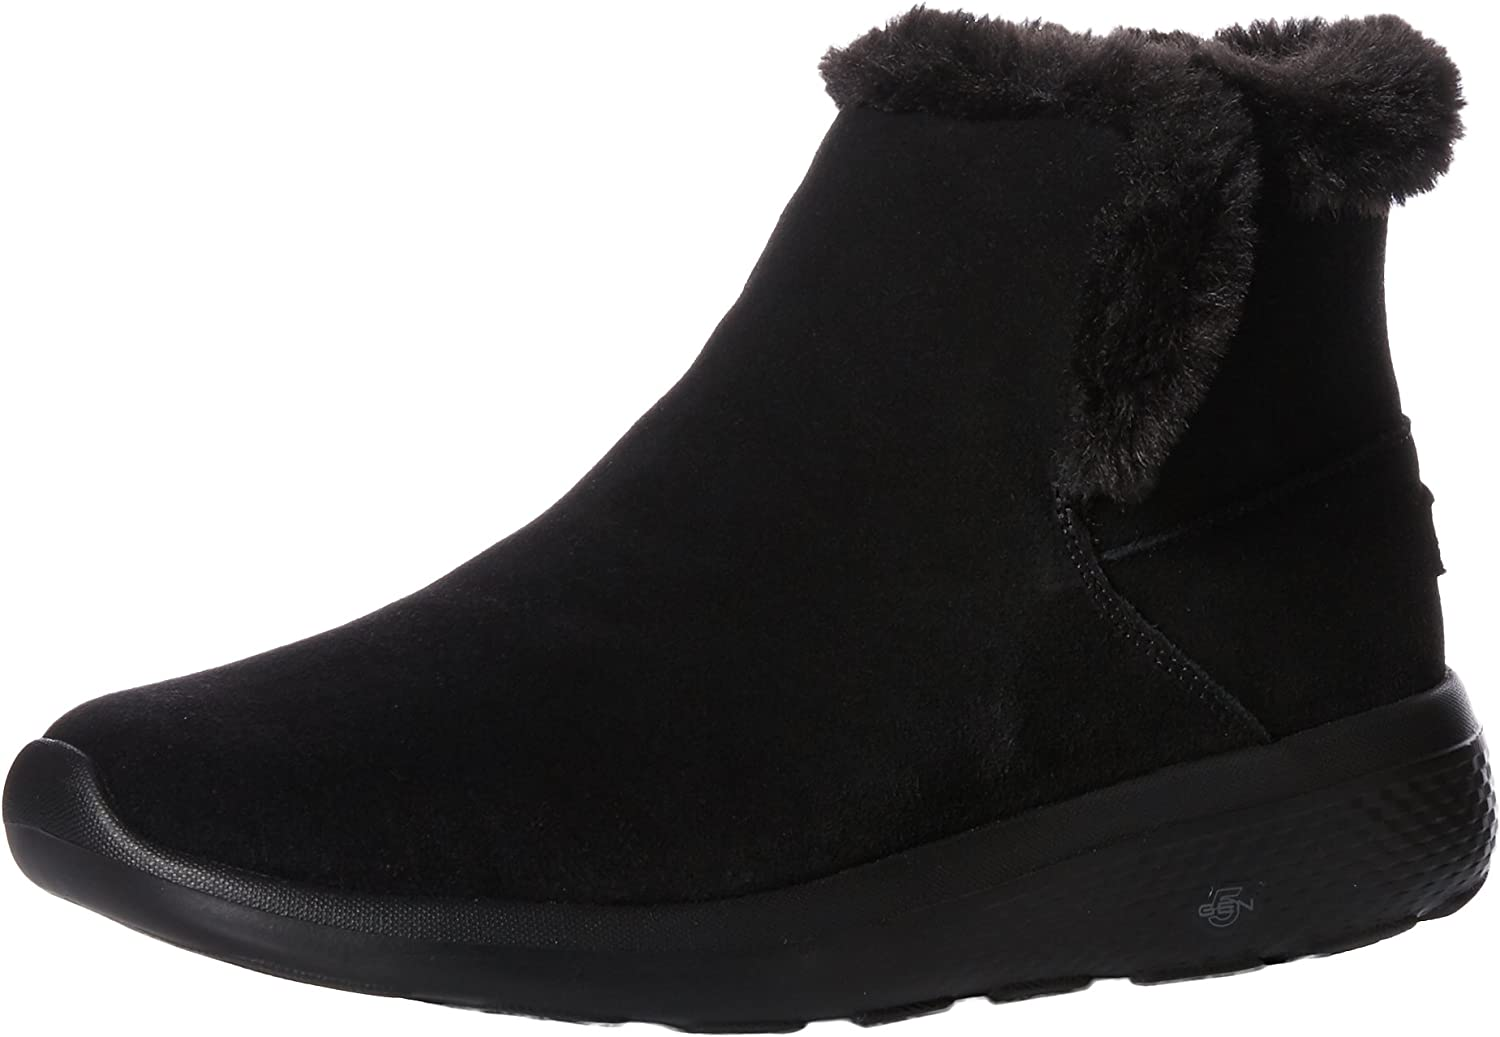 Skechers Womens On-The-go City 2 - Bundle Wide Winter Boot